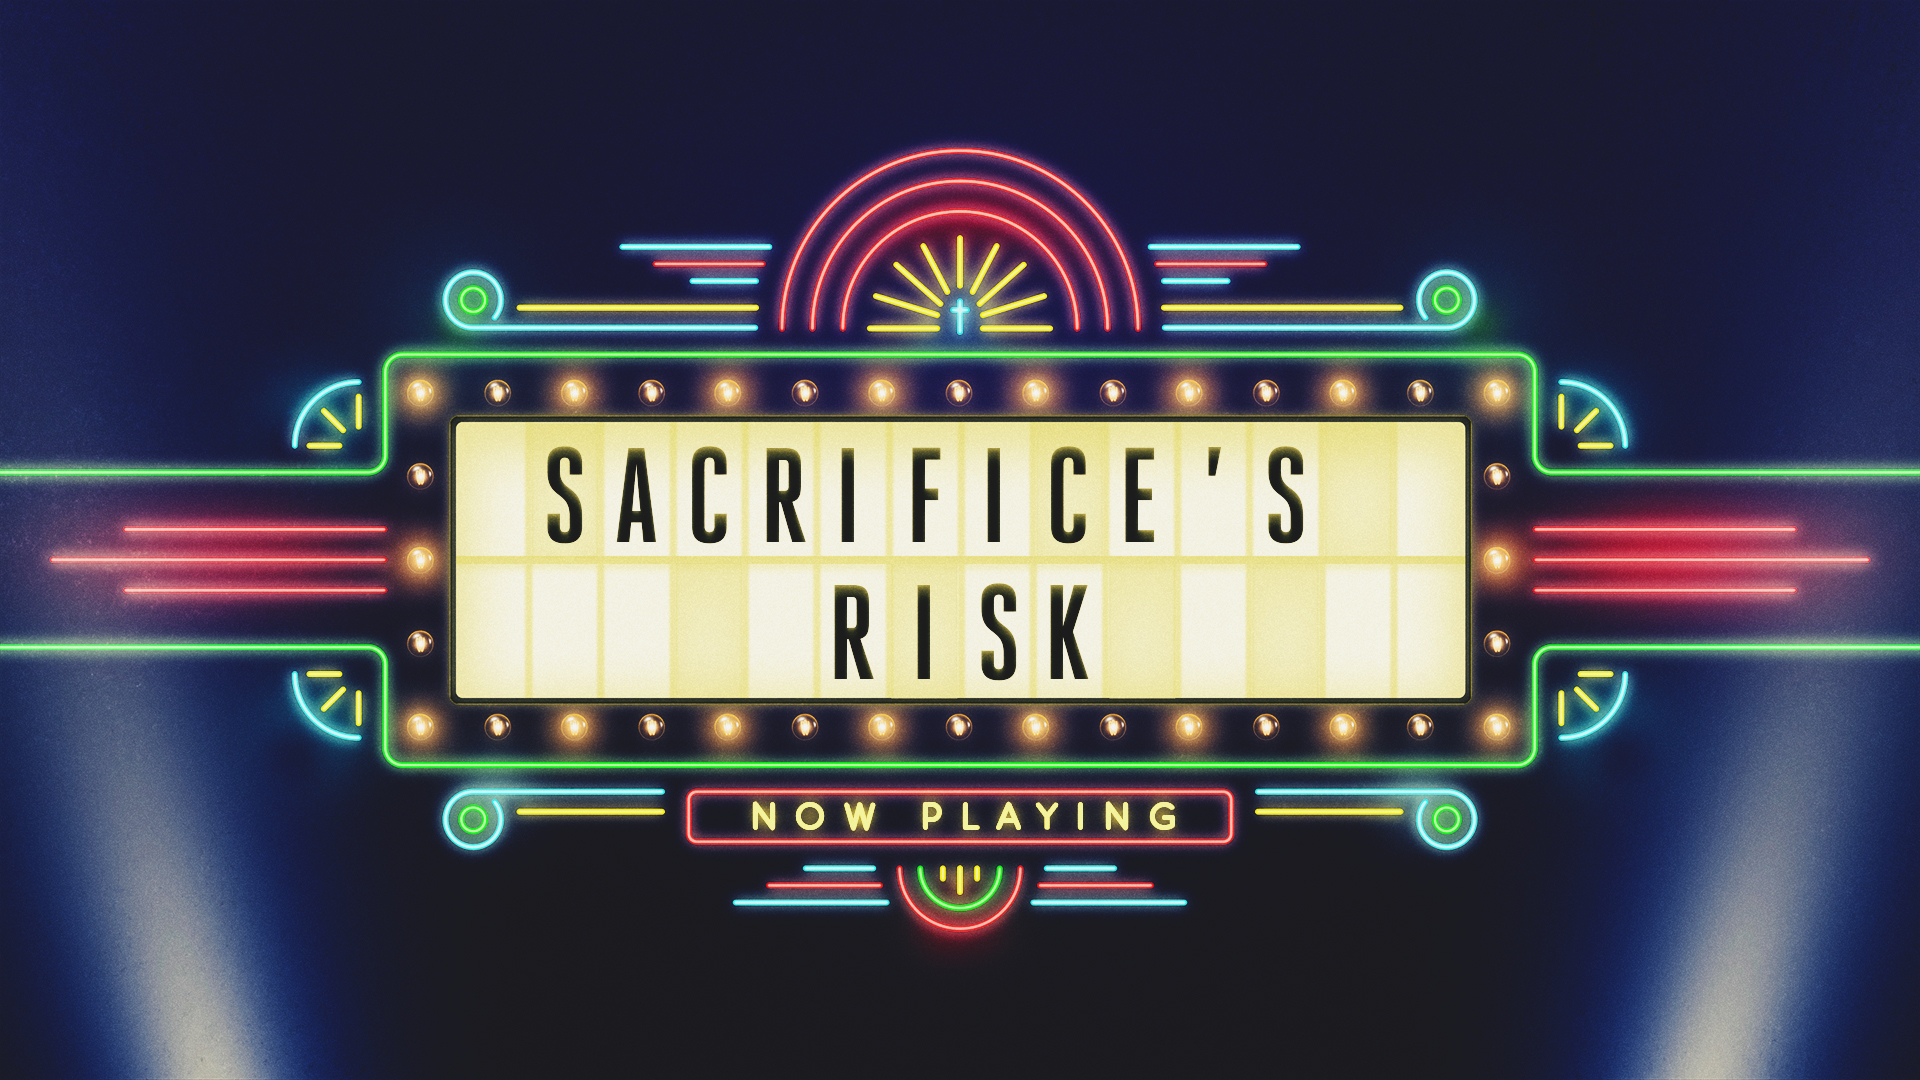 Sacrifice's Risk